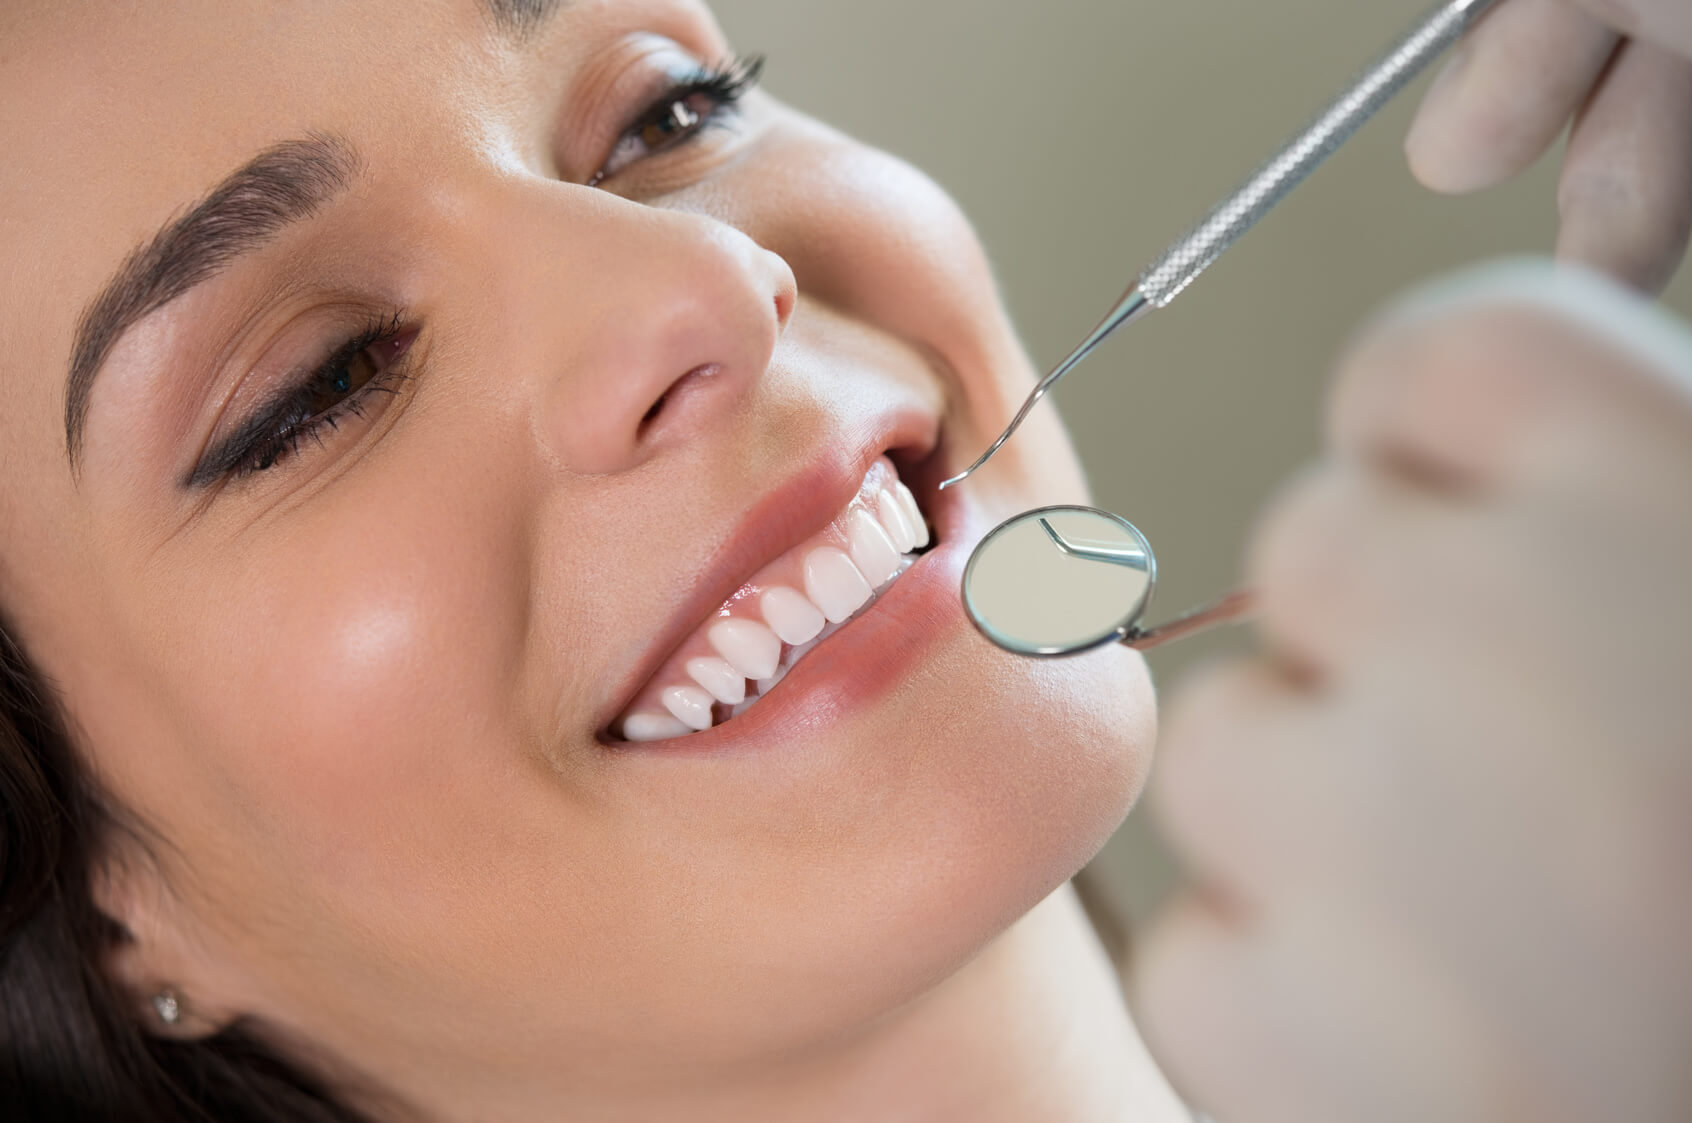 DDC Woman at Dentist Fotolia_87438743_Subscription_Monthly_M (1).jpg